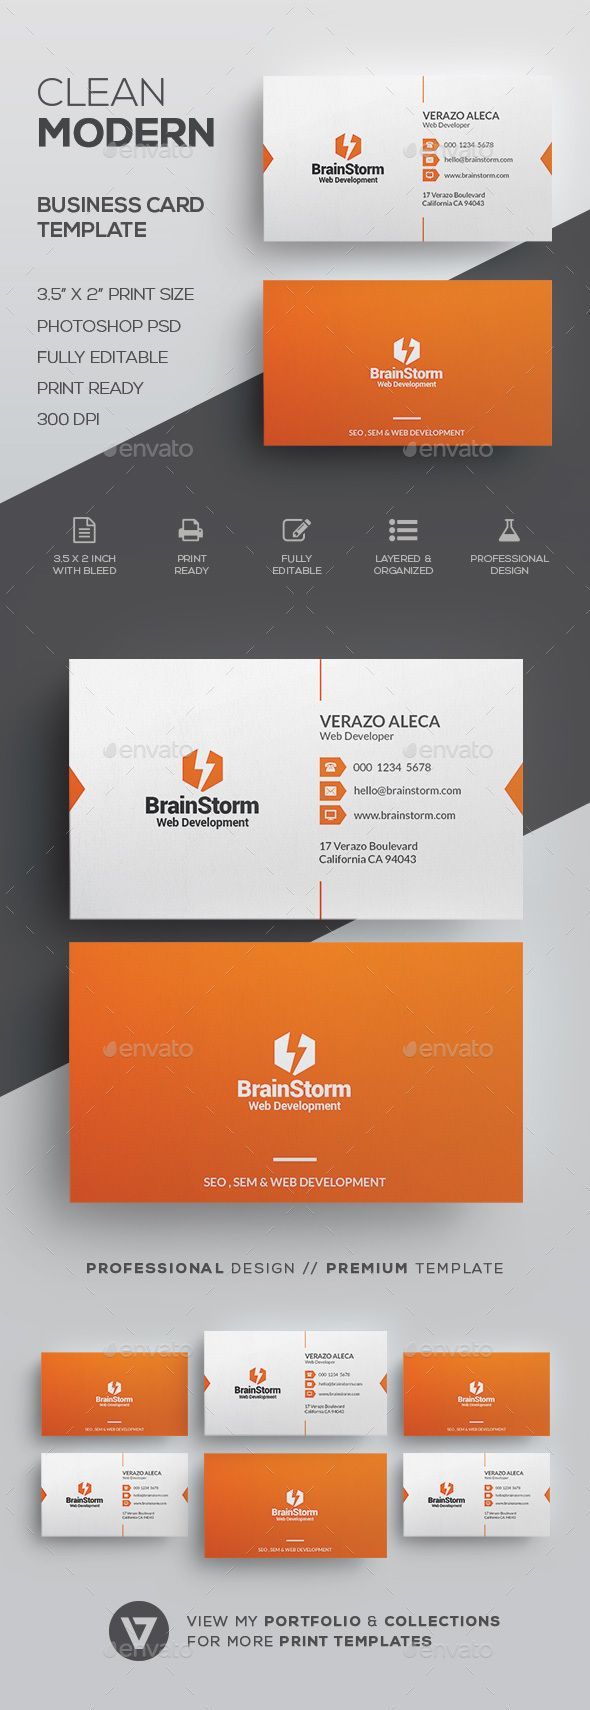 house cleaning business cards templates wwwimgkidcom